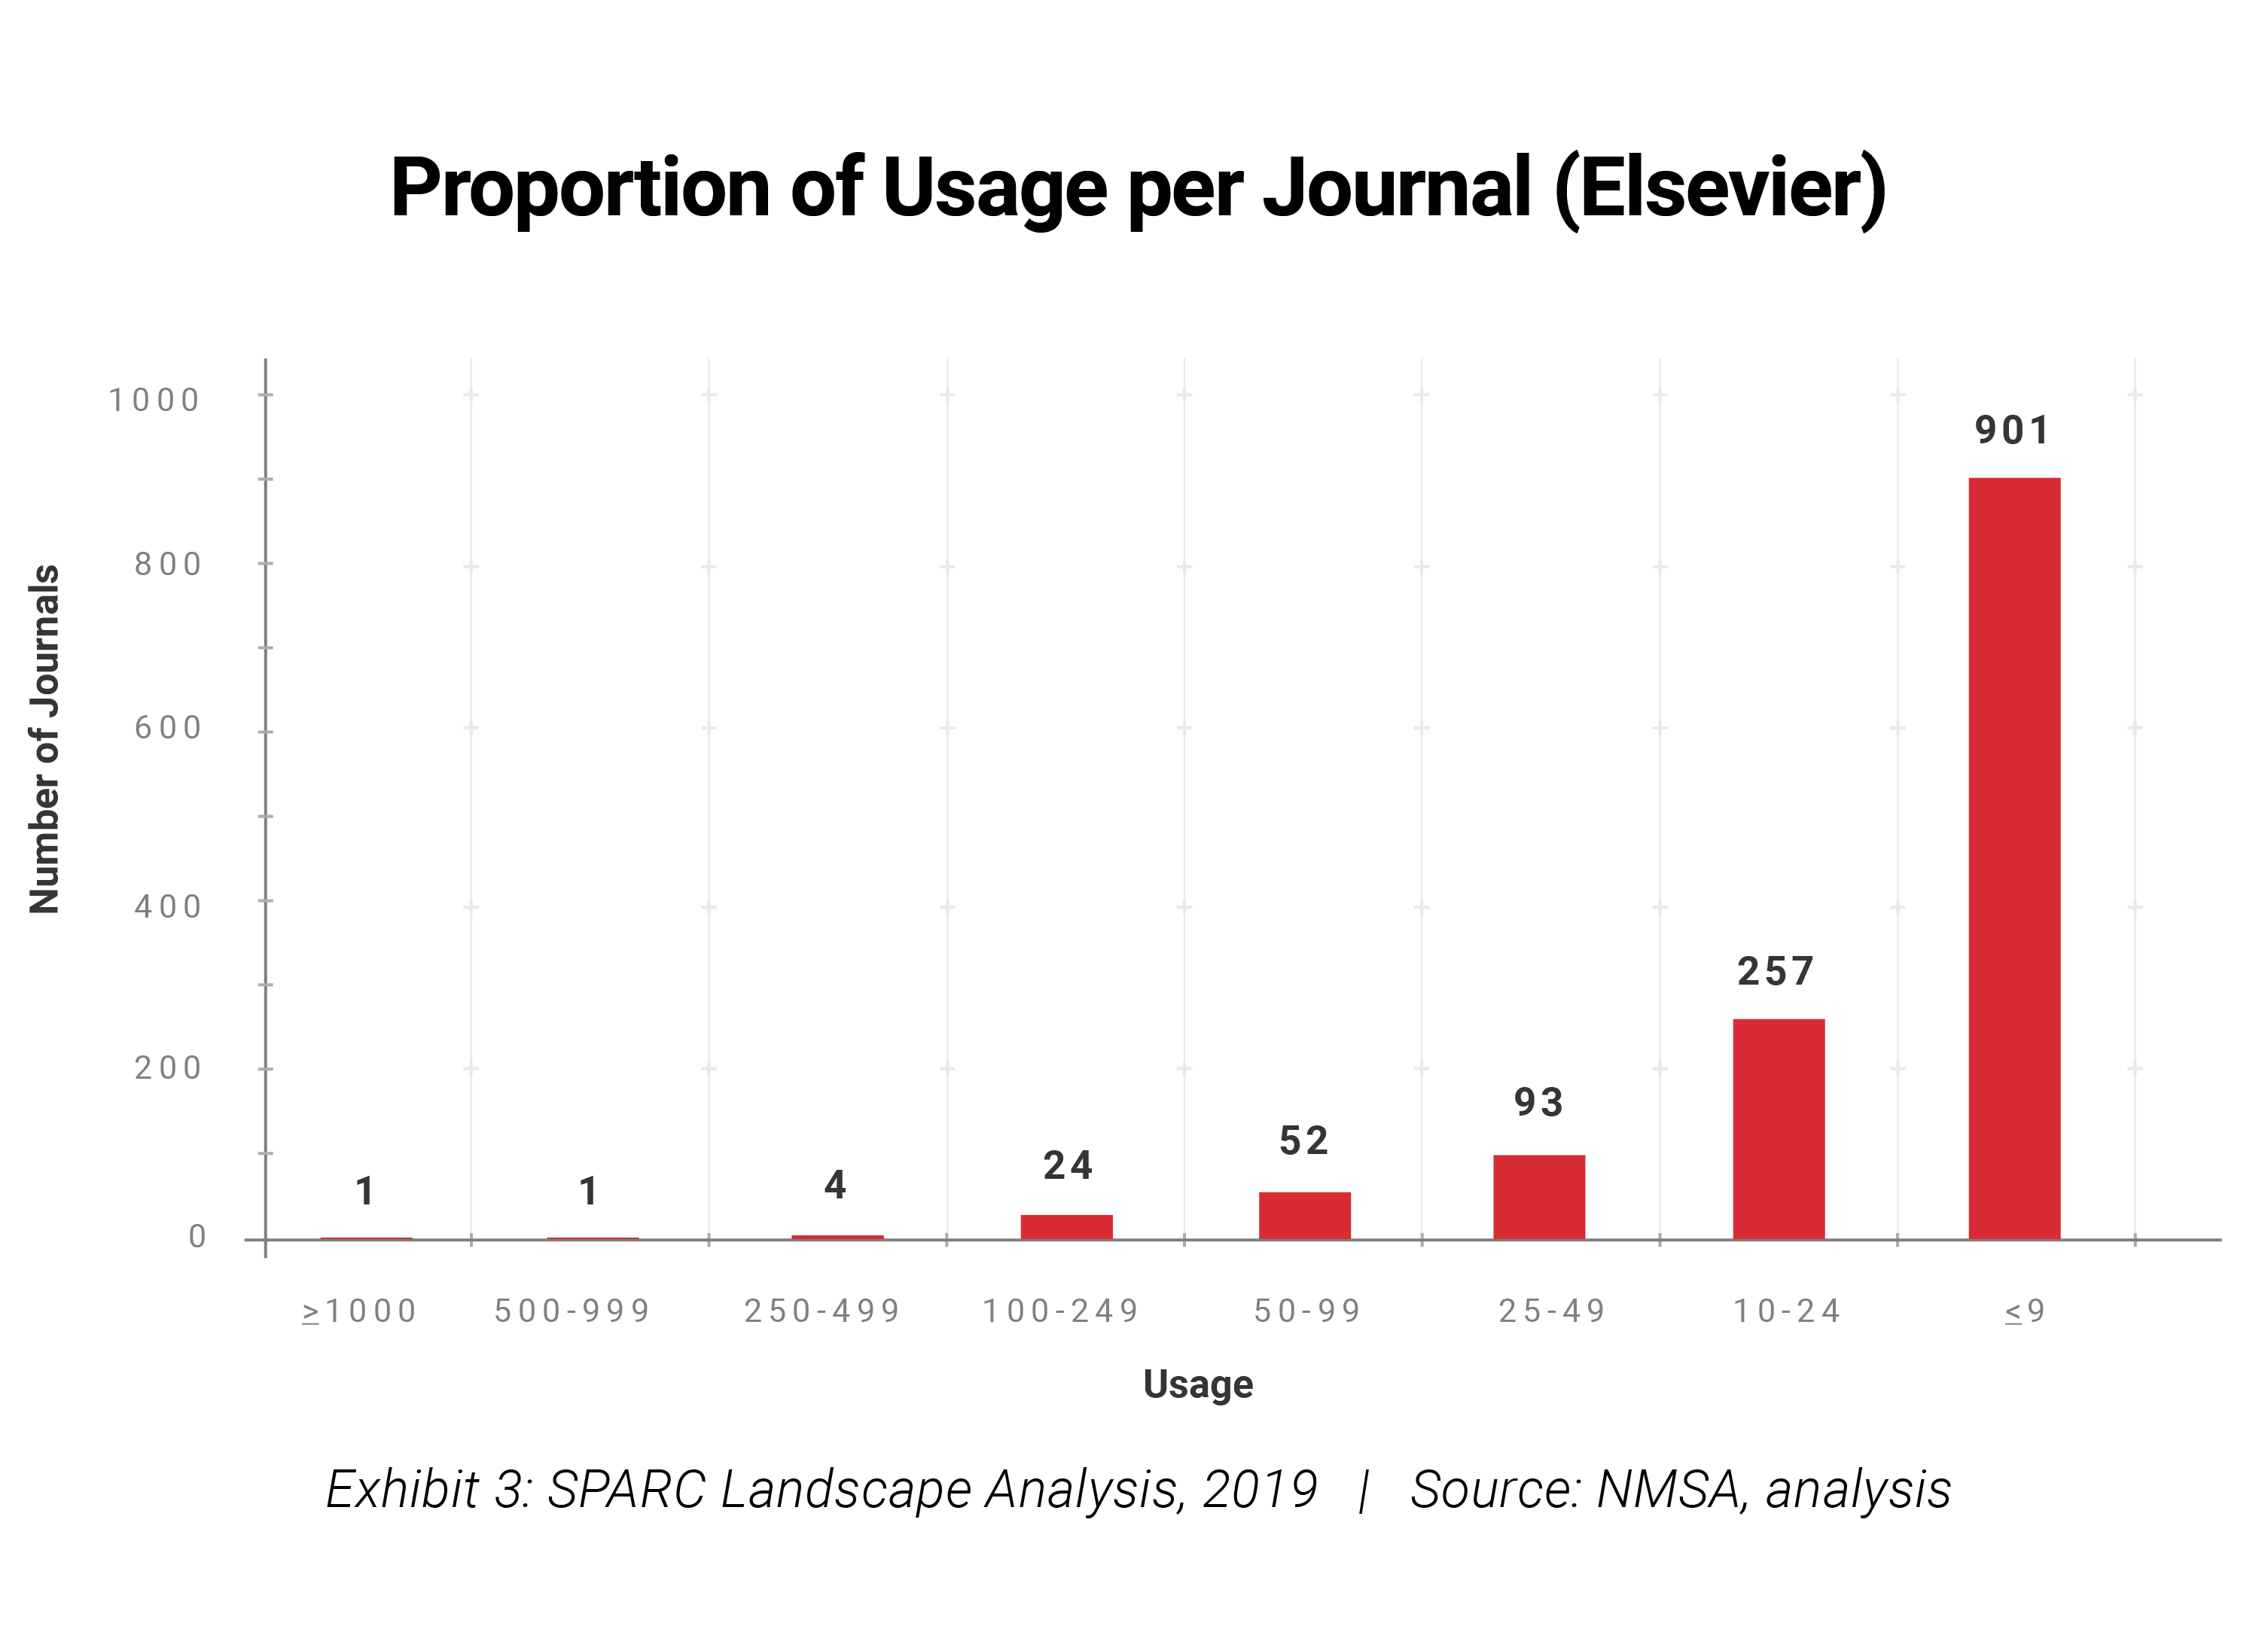 Proportion of Usage per Journal (Elsevier)